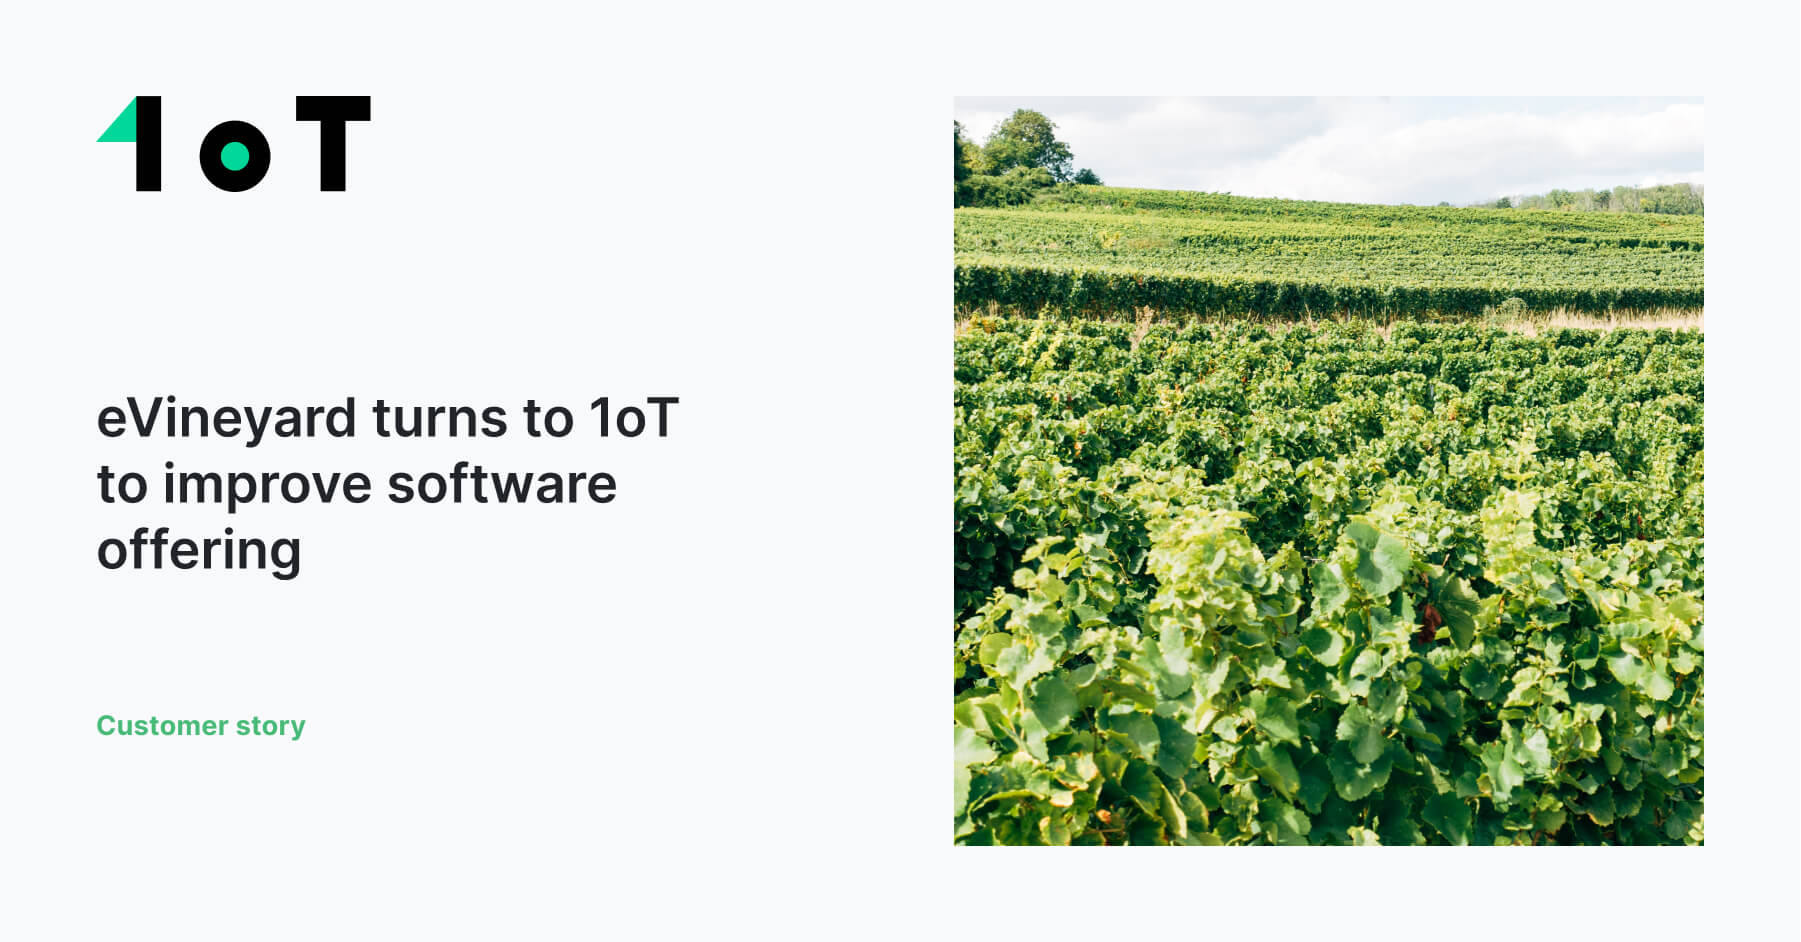 Article cover image for eVineyard turns to 1oT to improve software offering